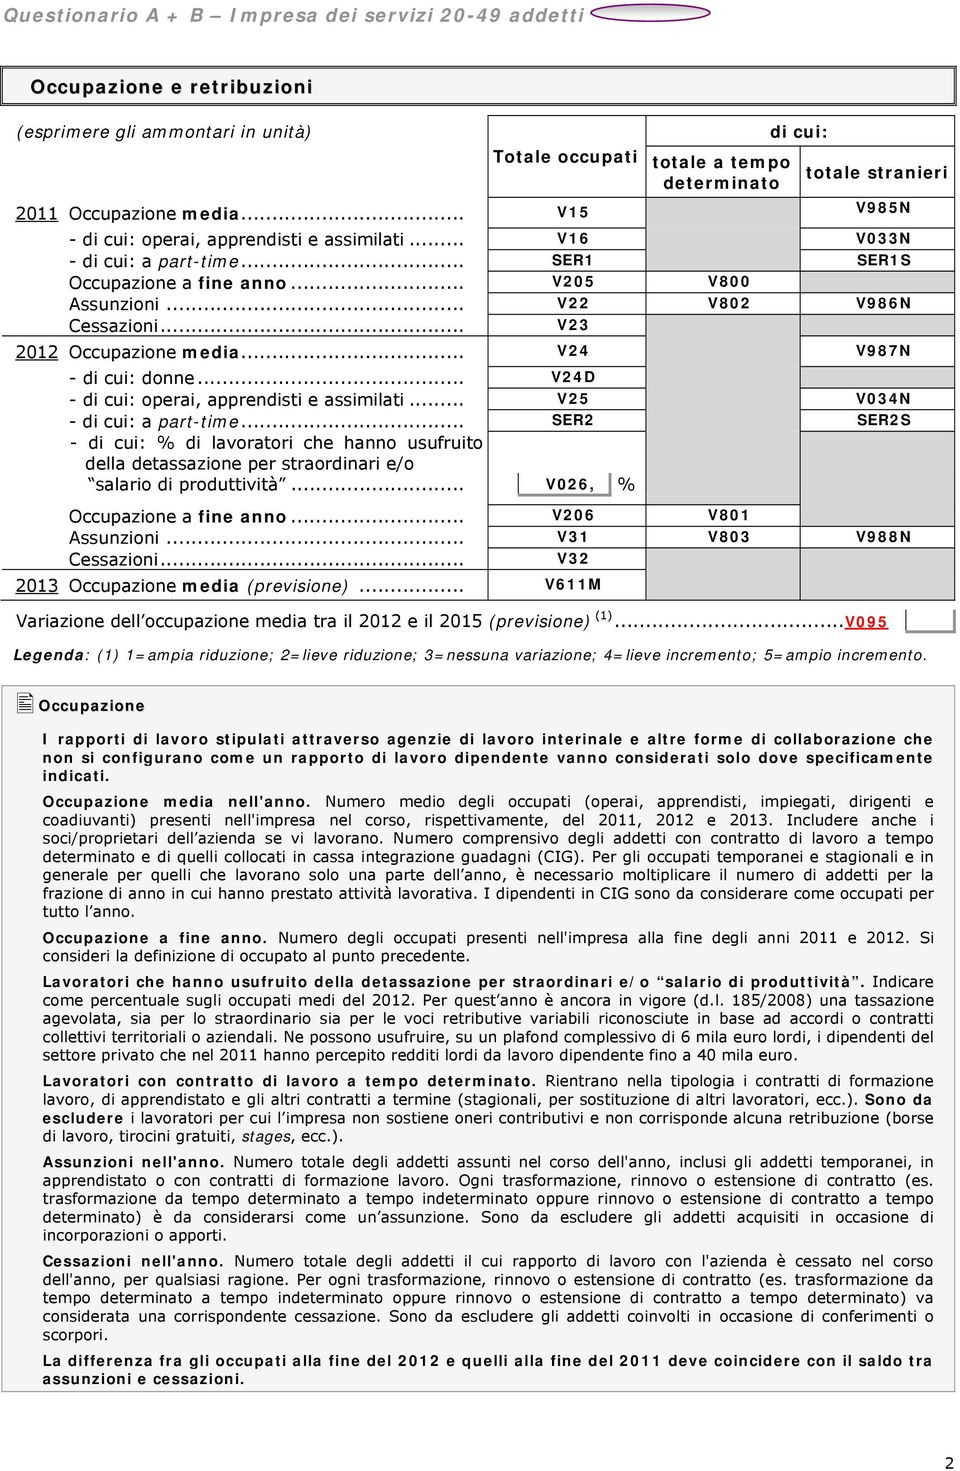 .. V23 2012 Occupazione media... V24 V987N - di cui: donne... V24D - di cui: operai, apprendisti e assimilati... V25 V034N - di cui: a part-time.